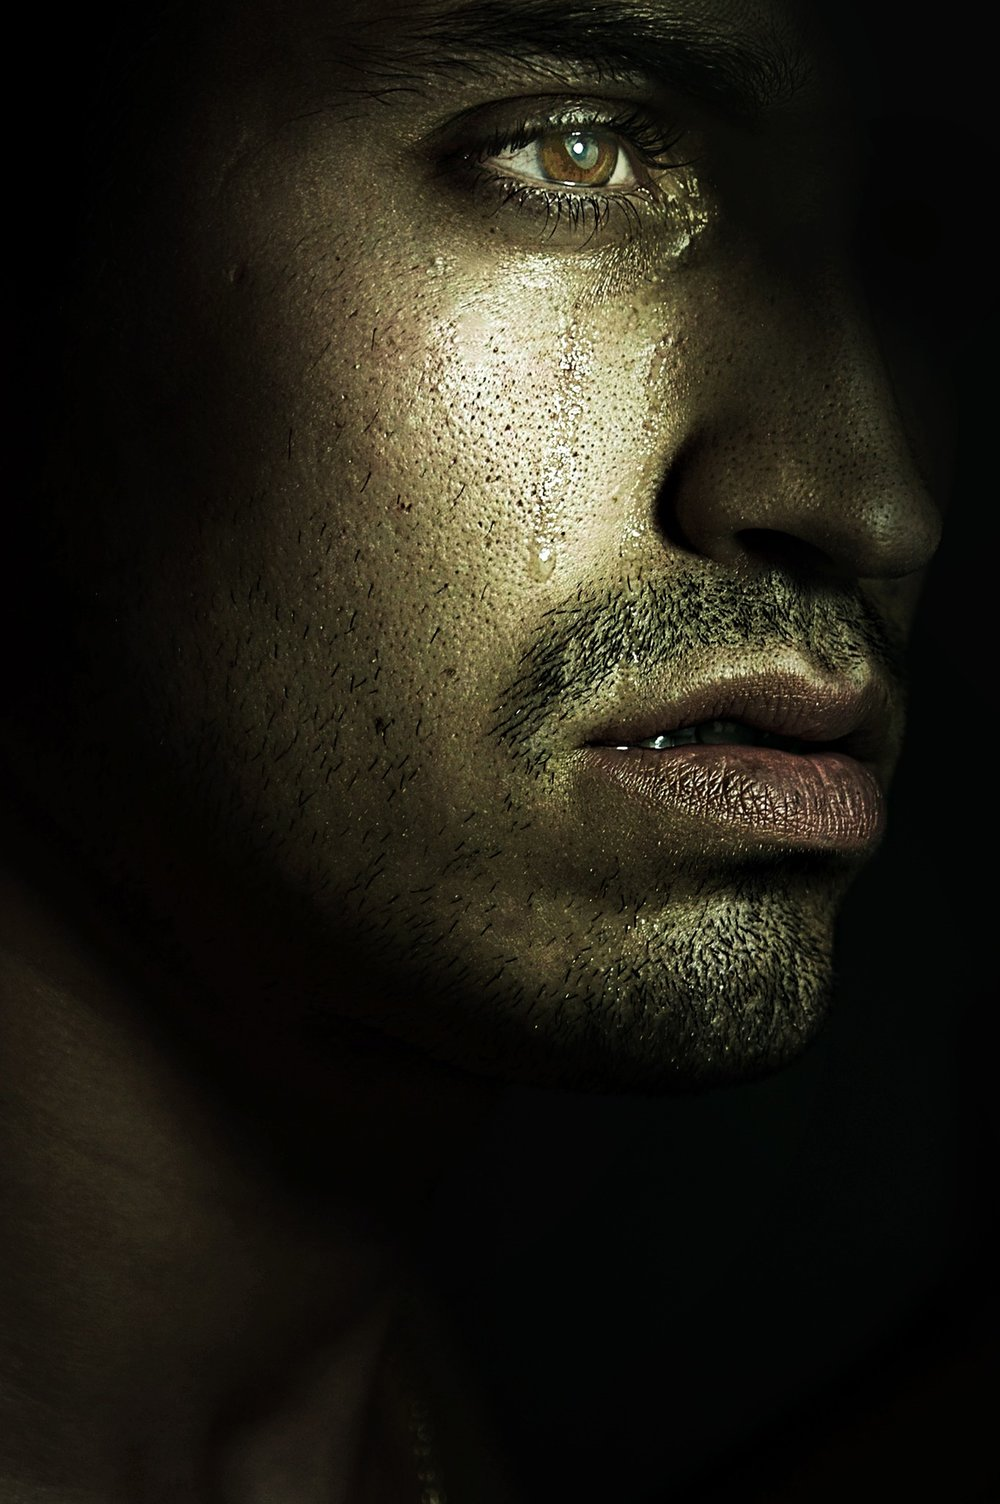 closeup of sad man with tear coming down his cheek